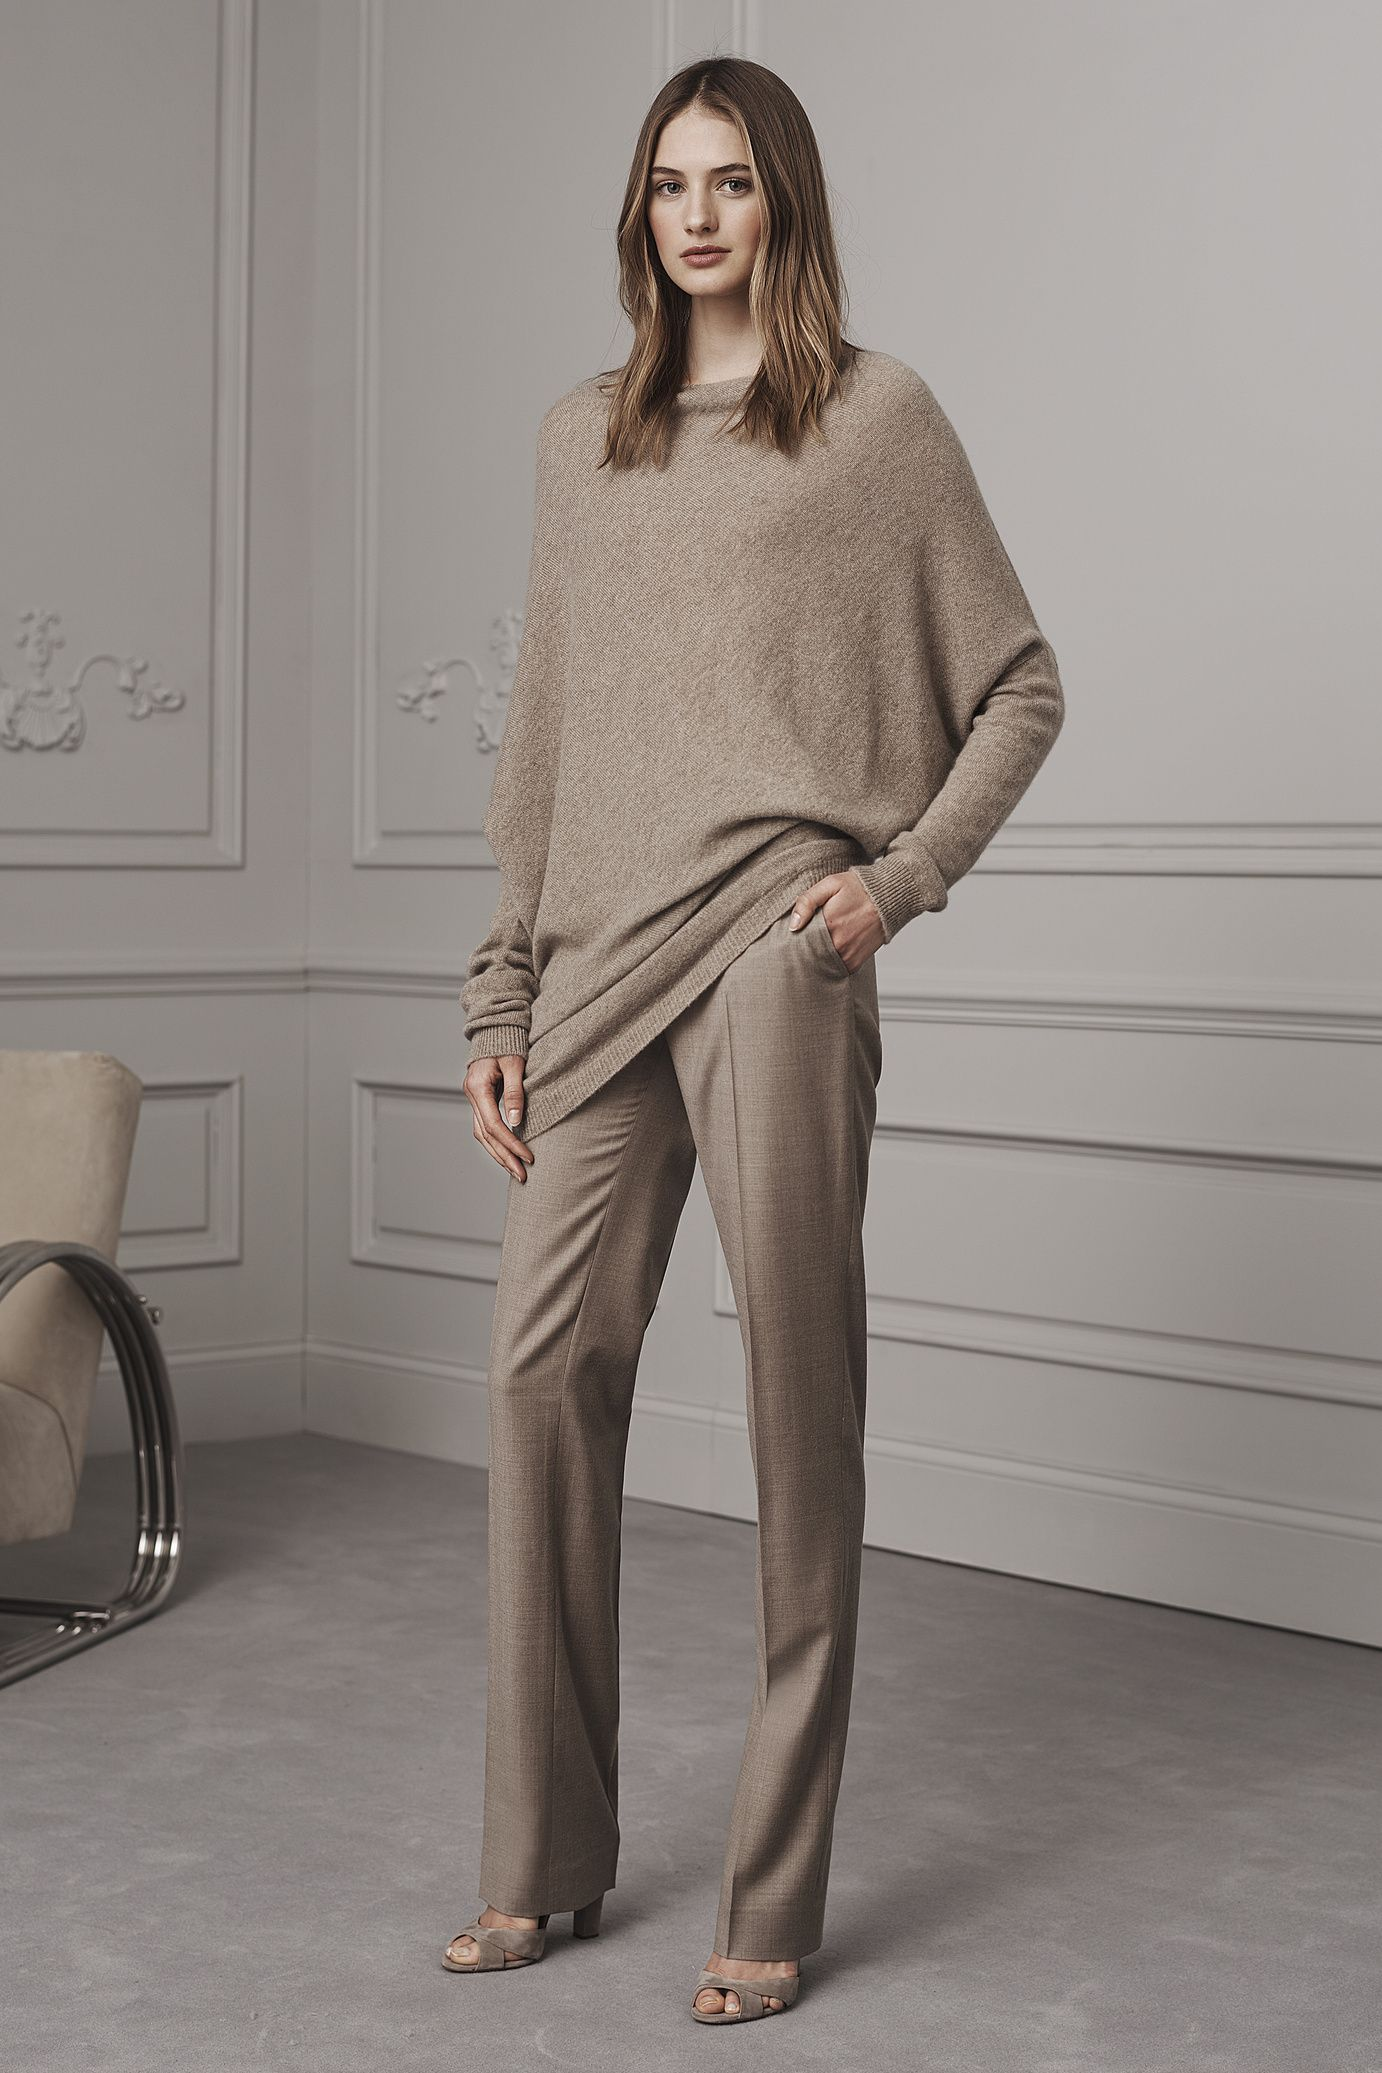 Ralph Lauren Collection Pre-Fall Winter 2016-2017 13  3507d39df